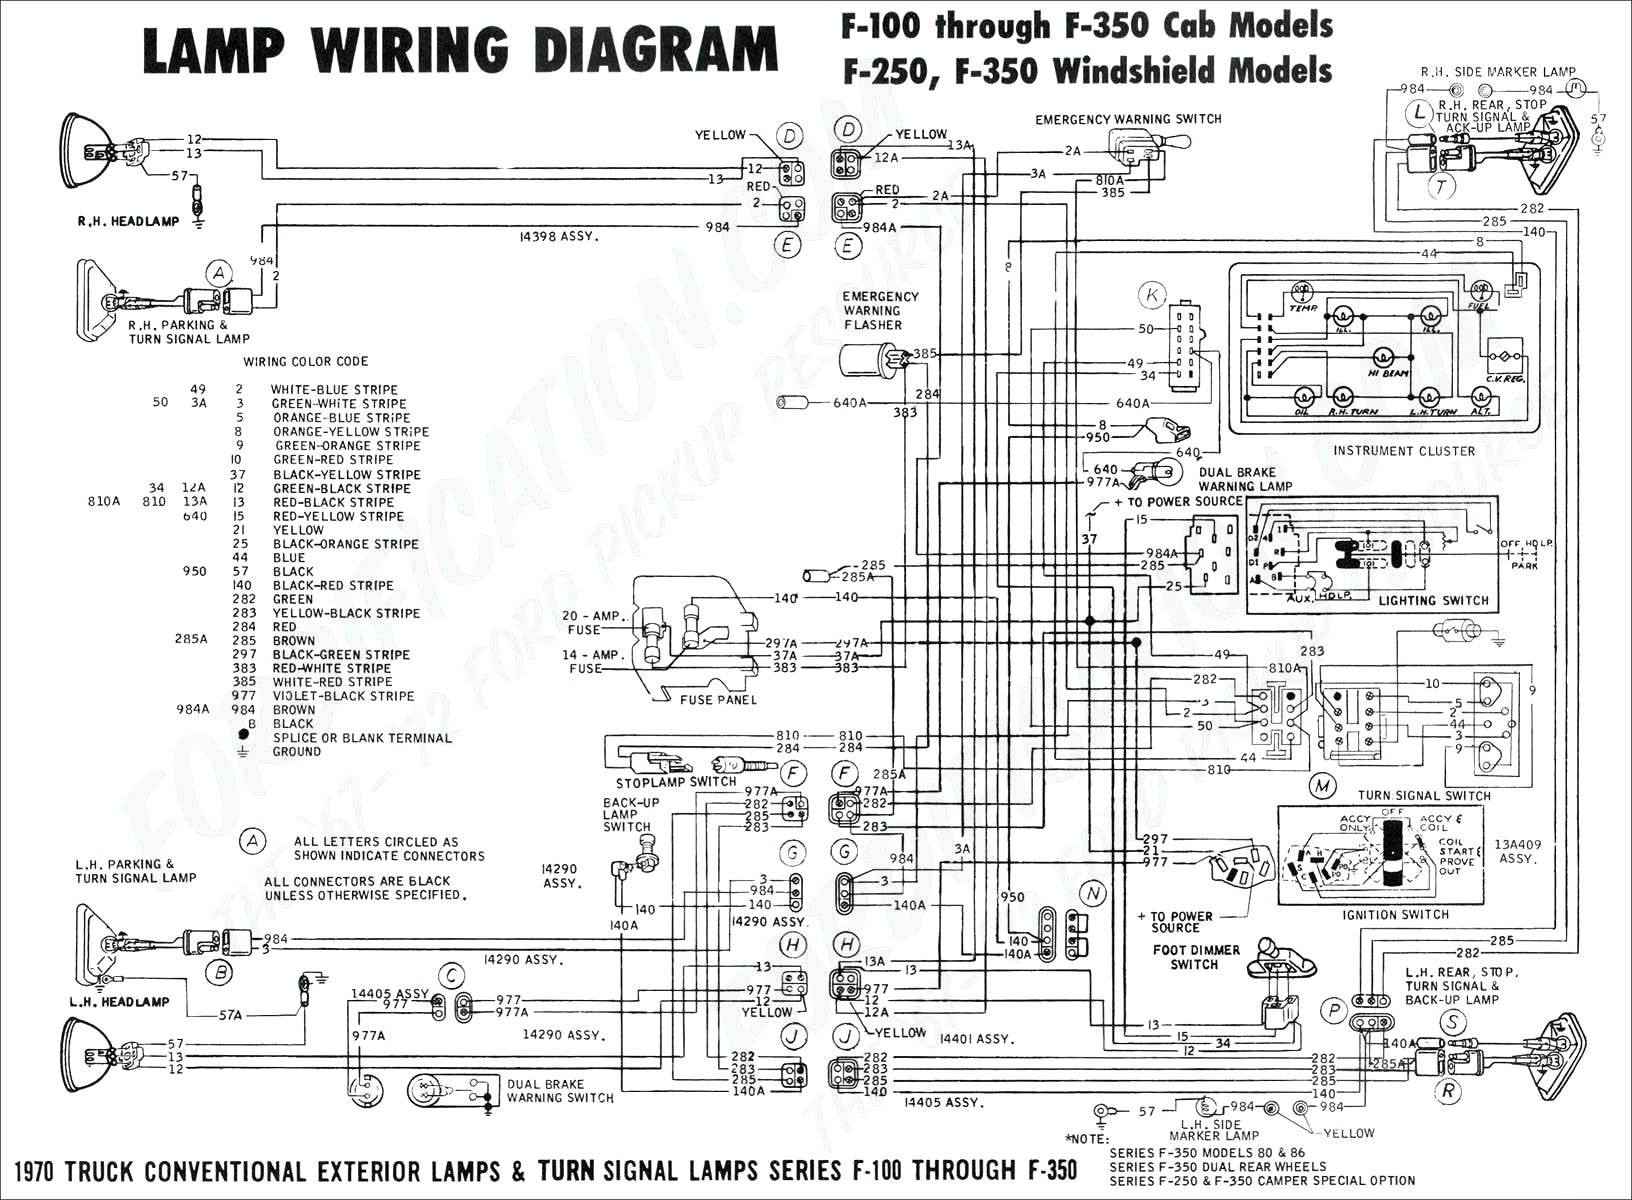 1986 Wire Digram ford Ignition Module Diagram] 99 ford Ranger Body Wiring Diagram Full Version Hd Of 1986 Wire Digram ford Ignition Module